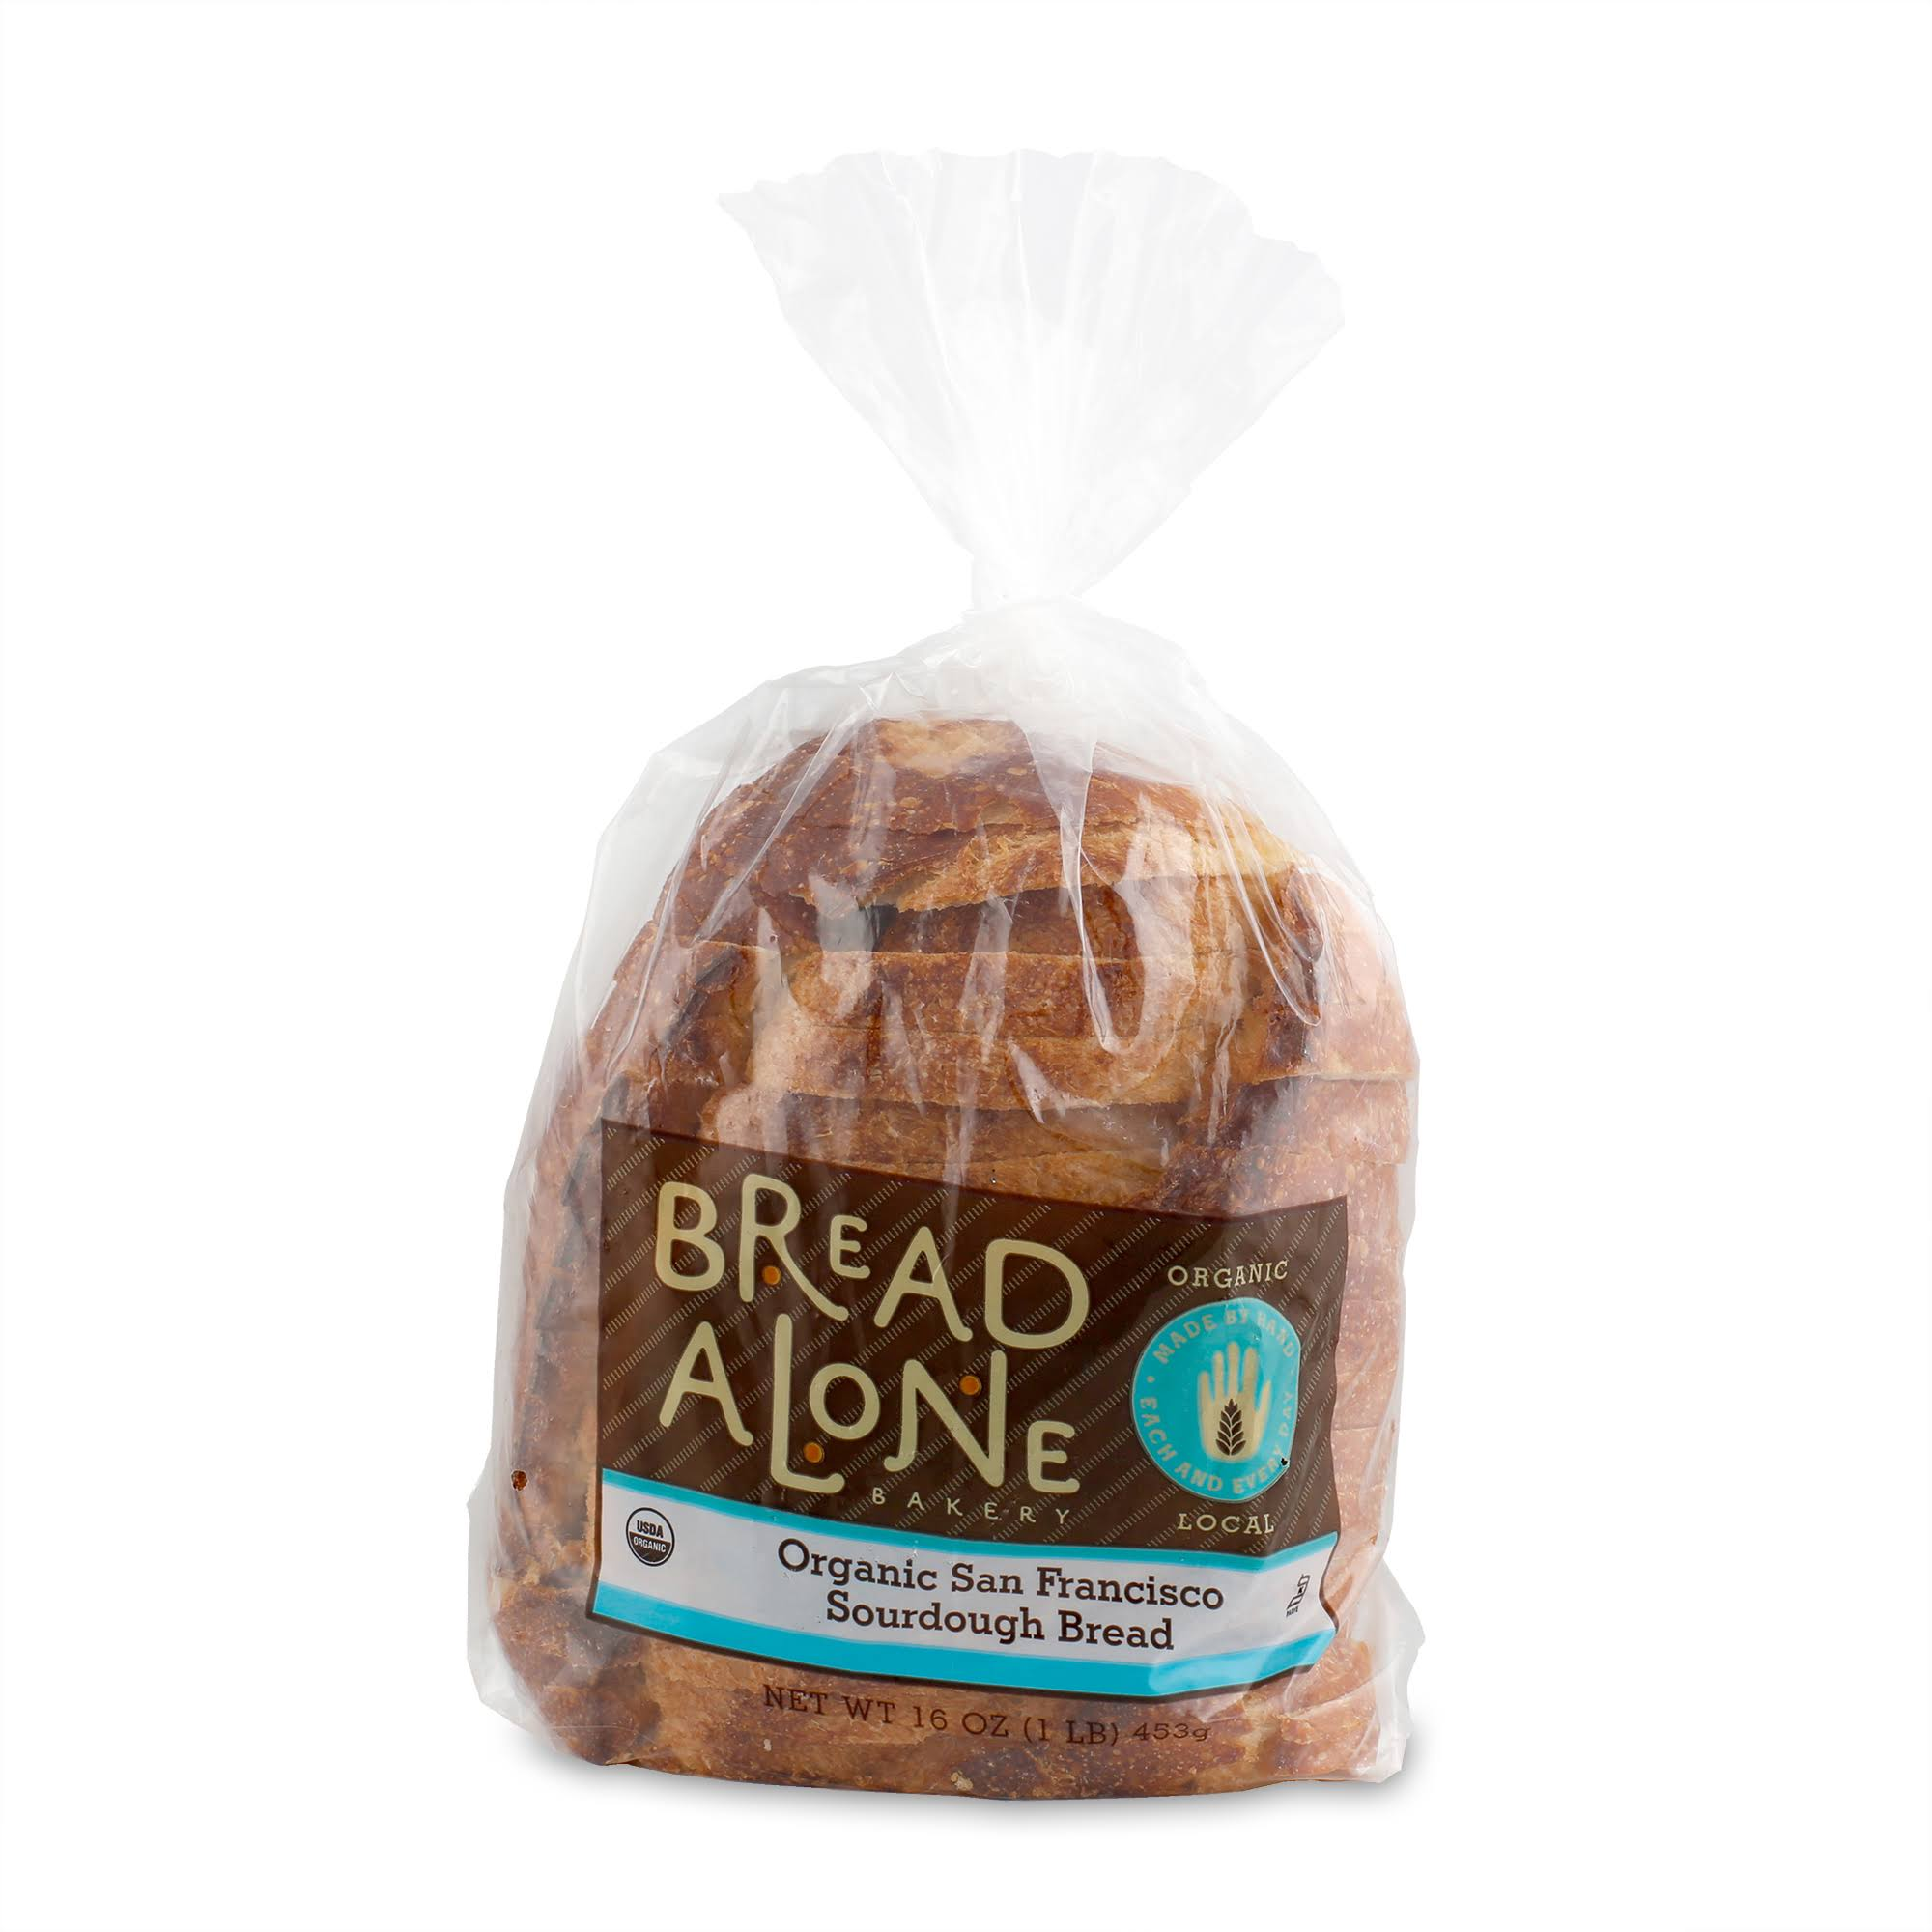 Bread Alone Bakery Bread, Organic, San Francisco Sourdough - 16 oz